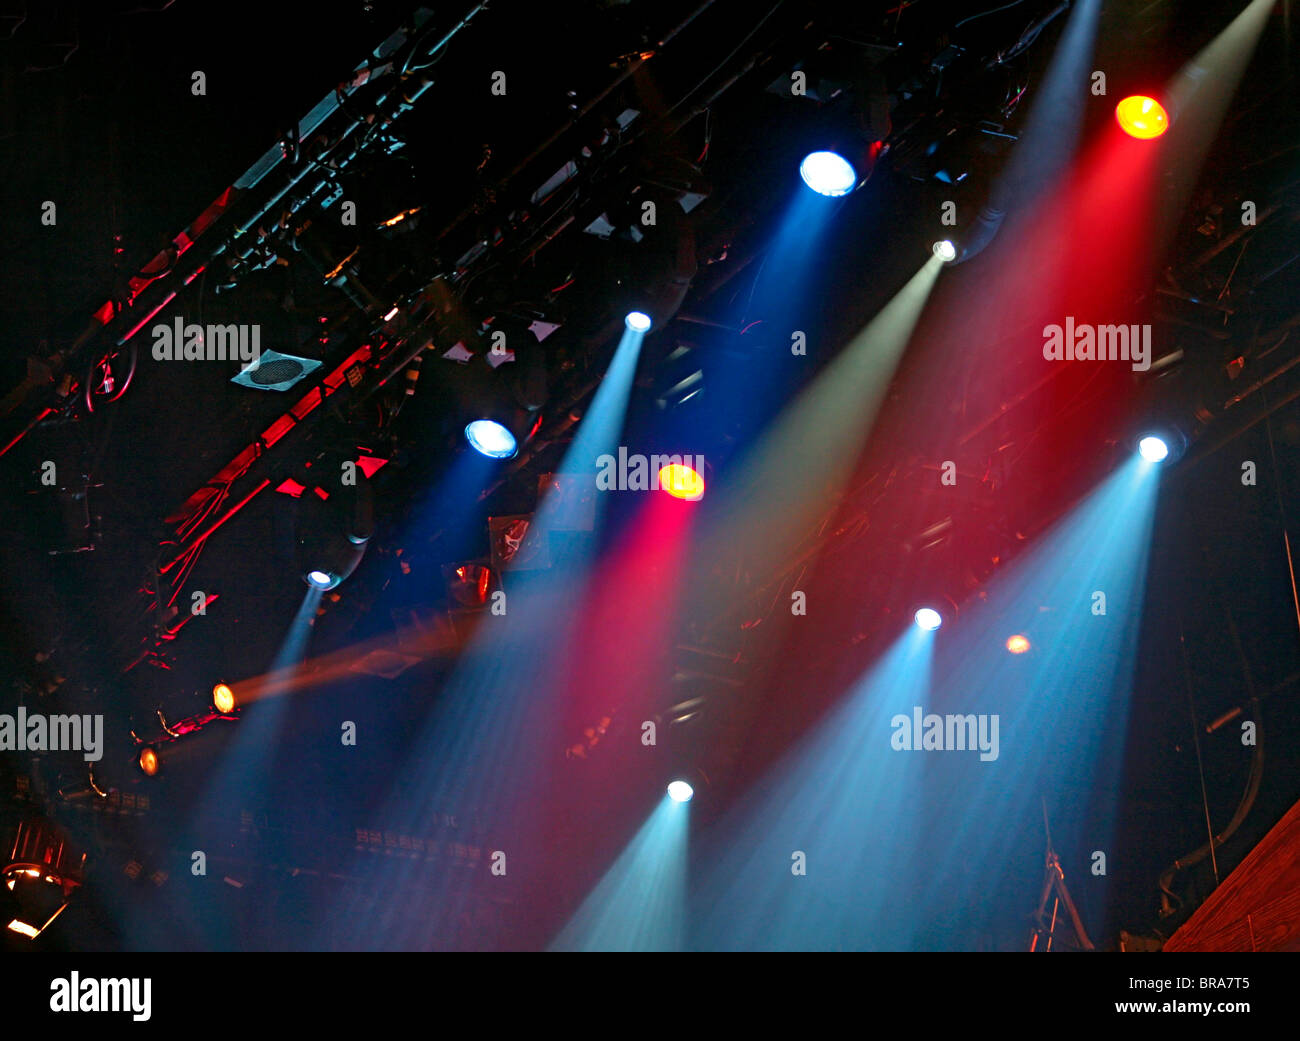 blue and red stage lighting against a dark black background - Stock Image